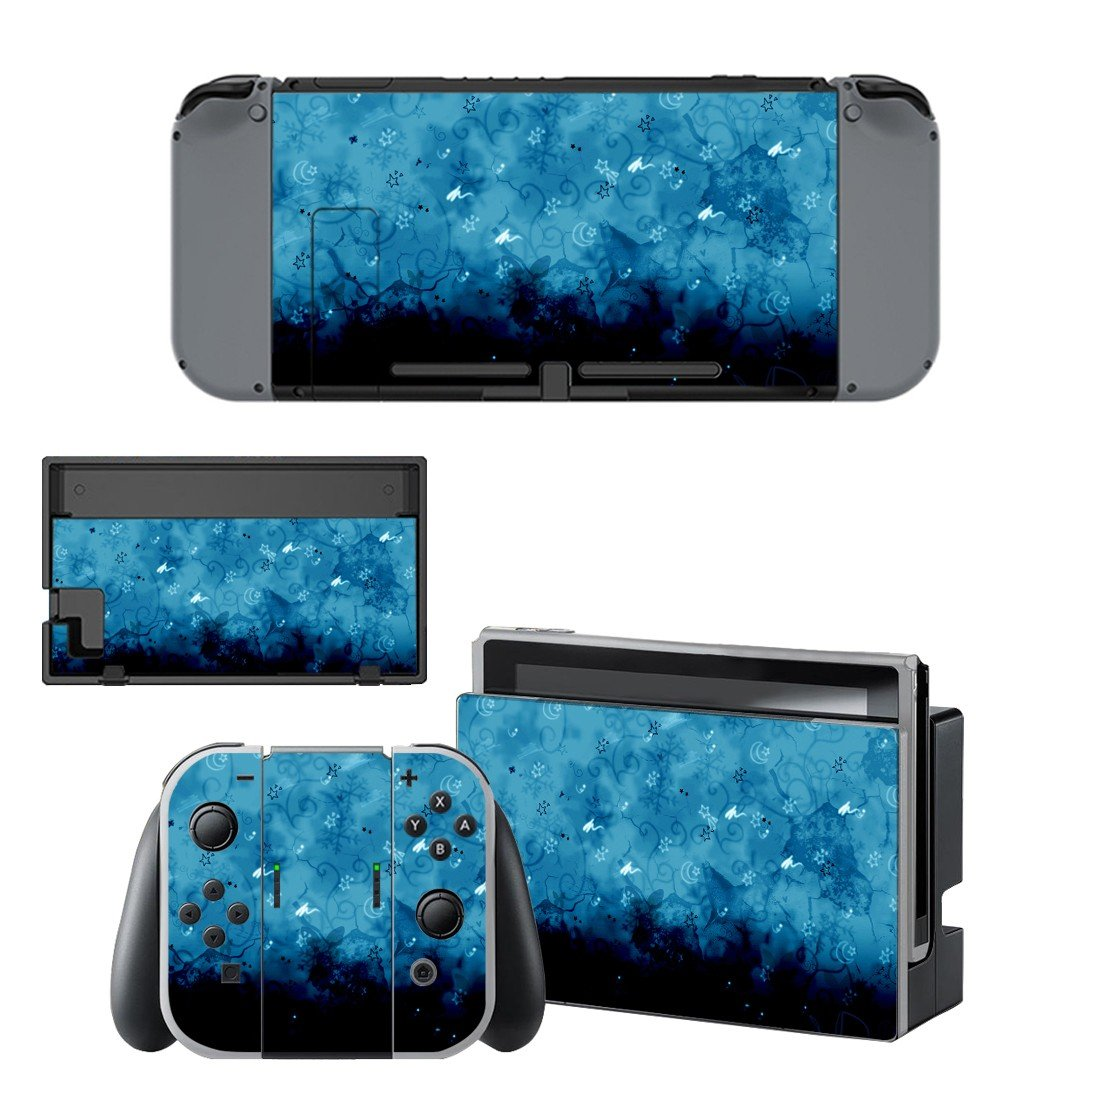 Star Moon clipart decal for Nintendo switch console sticker skin